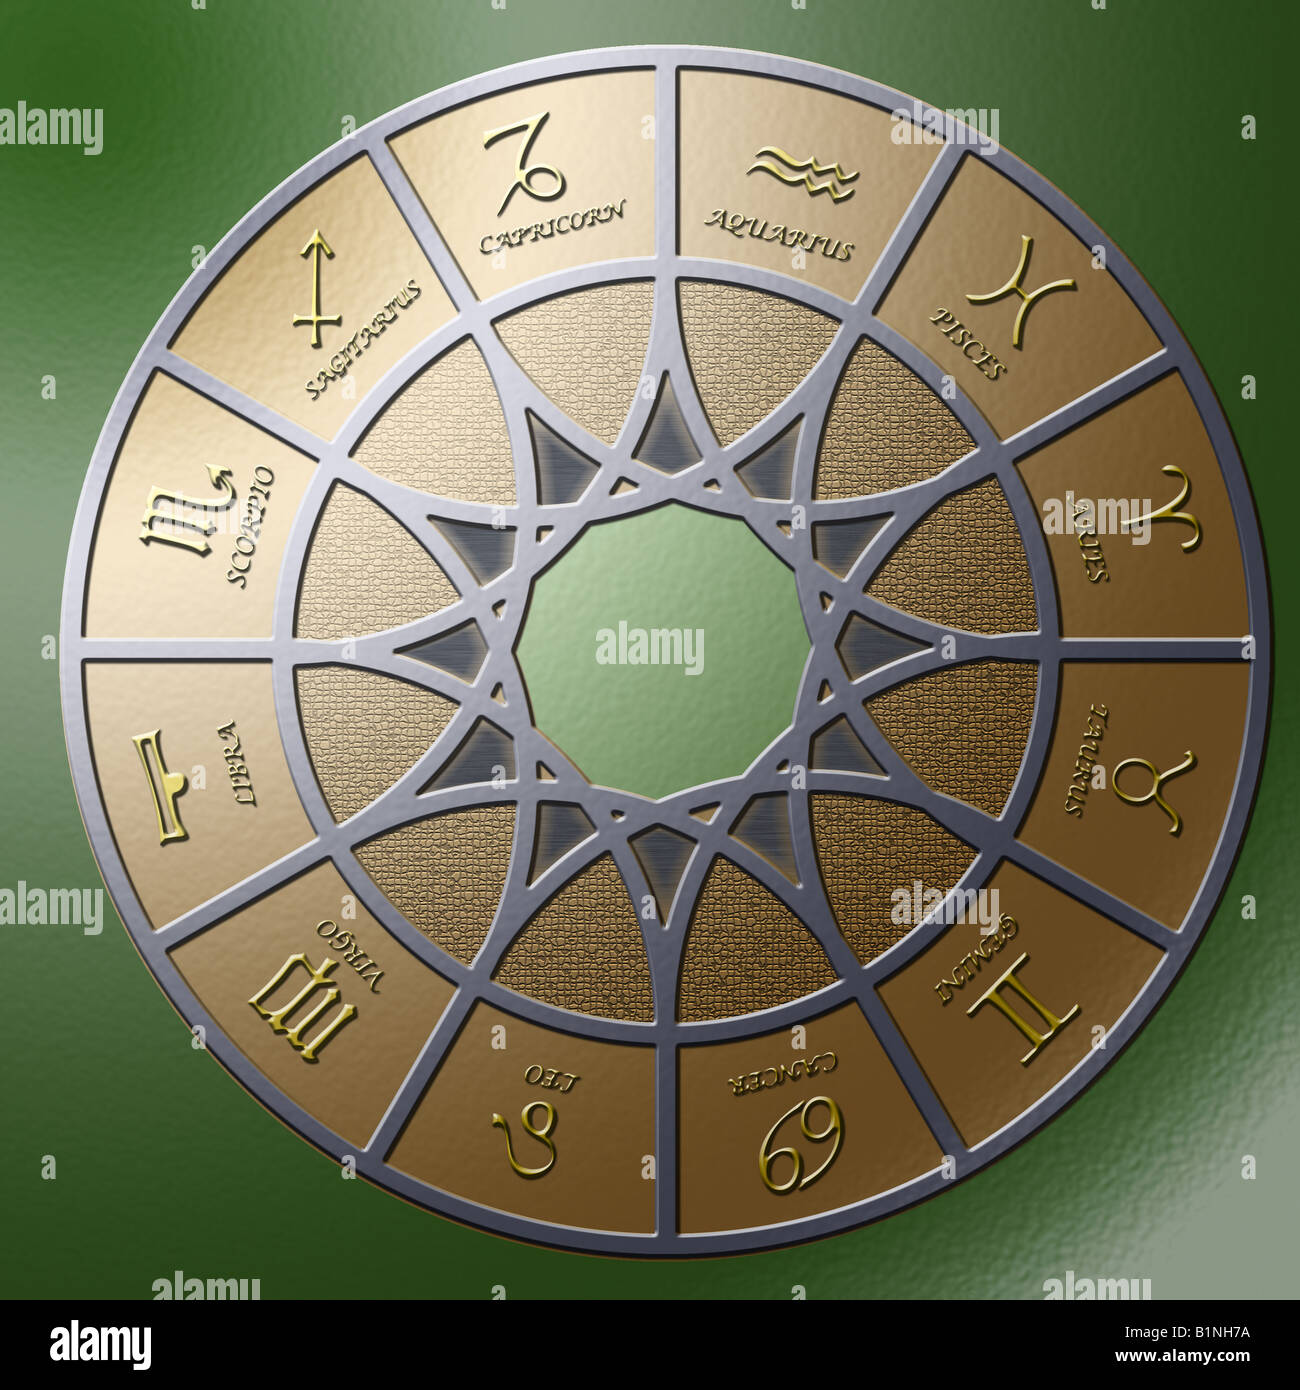 Illustration of a metal circle containing 12 embossed zodiac signs - Stock Image